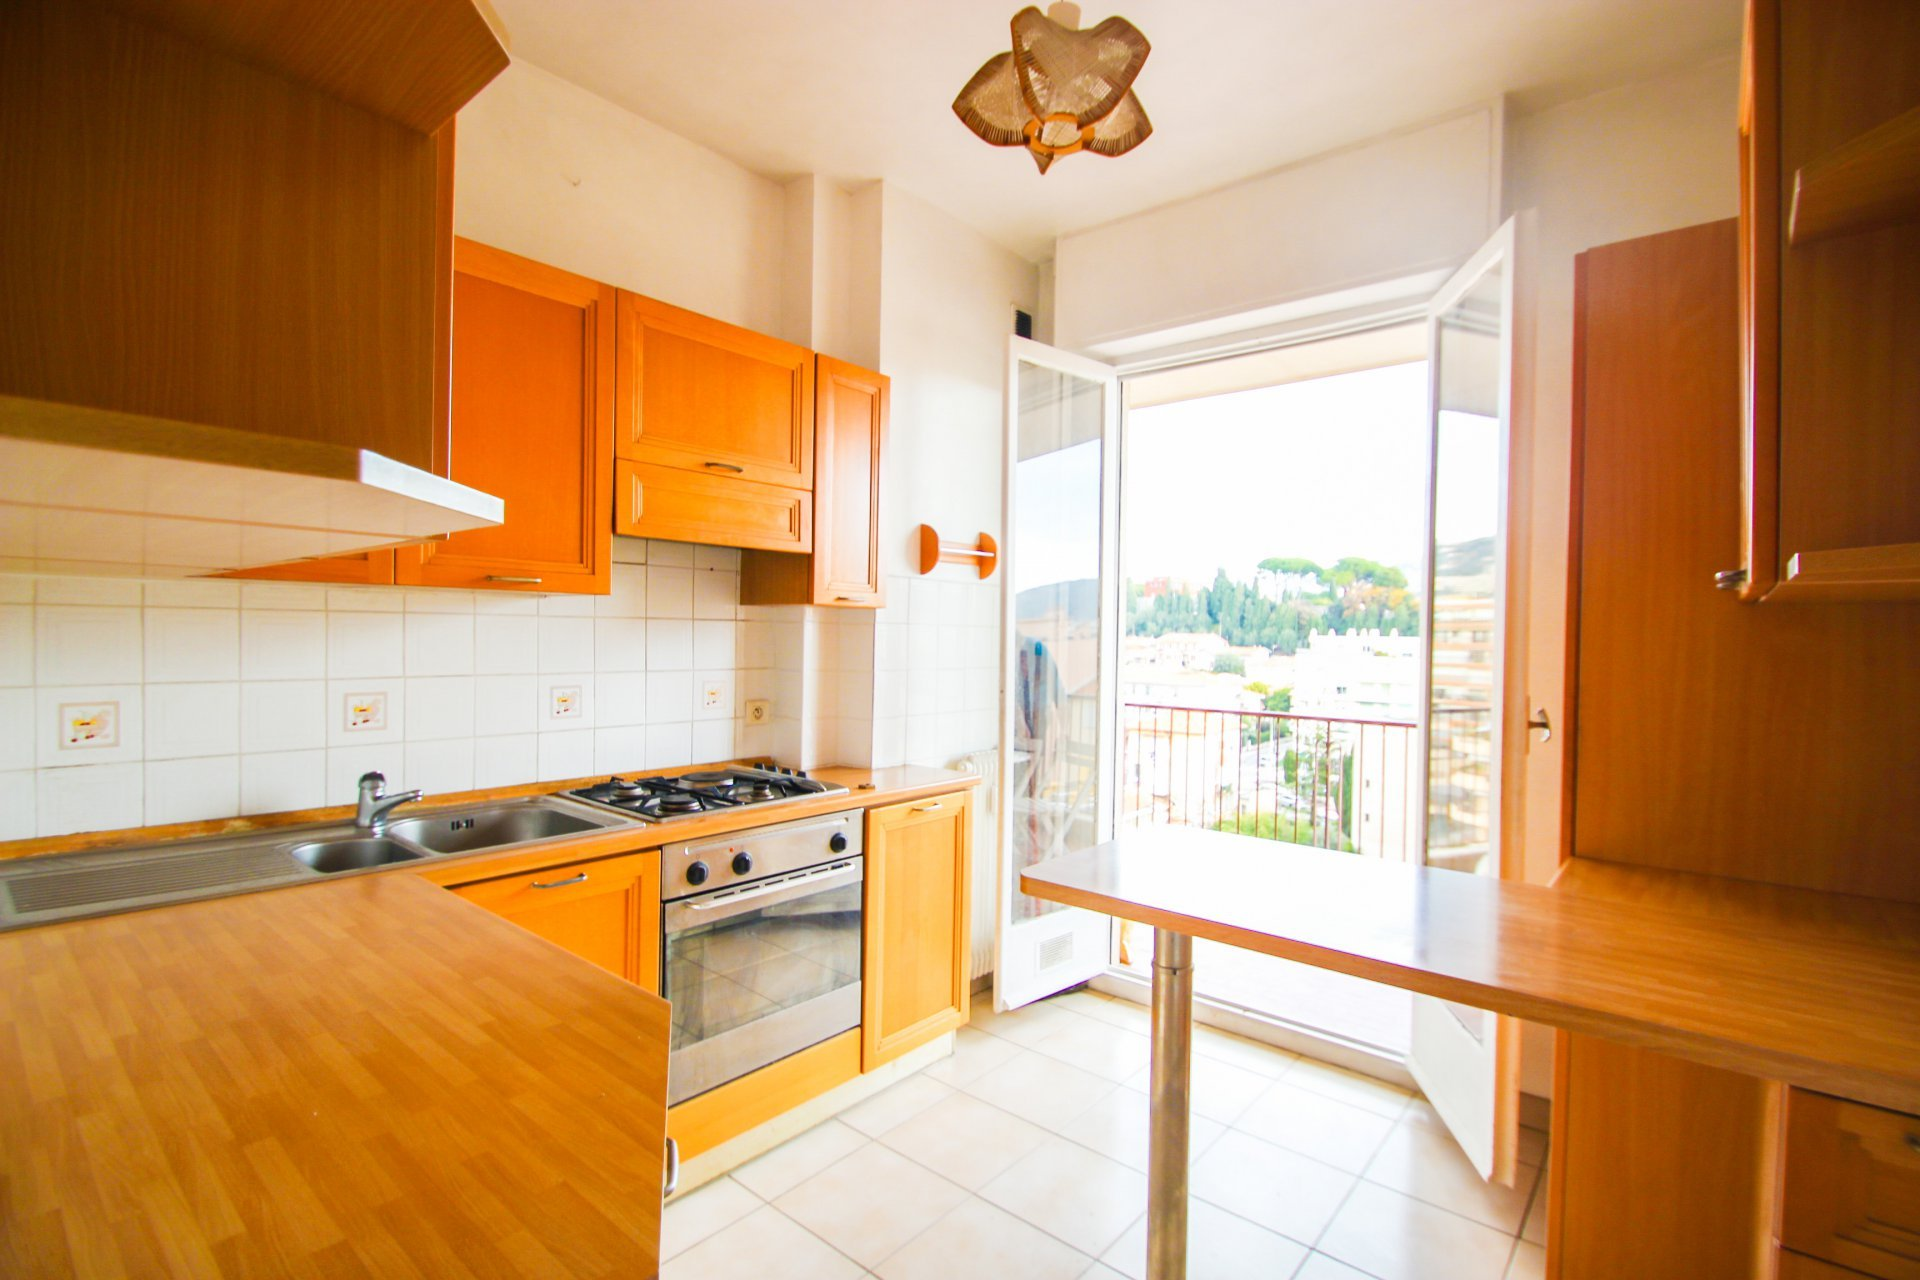 Location appartement 55 m2 2 pi ces 1 chambre nice - Location 3 pieces nice nord ...